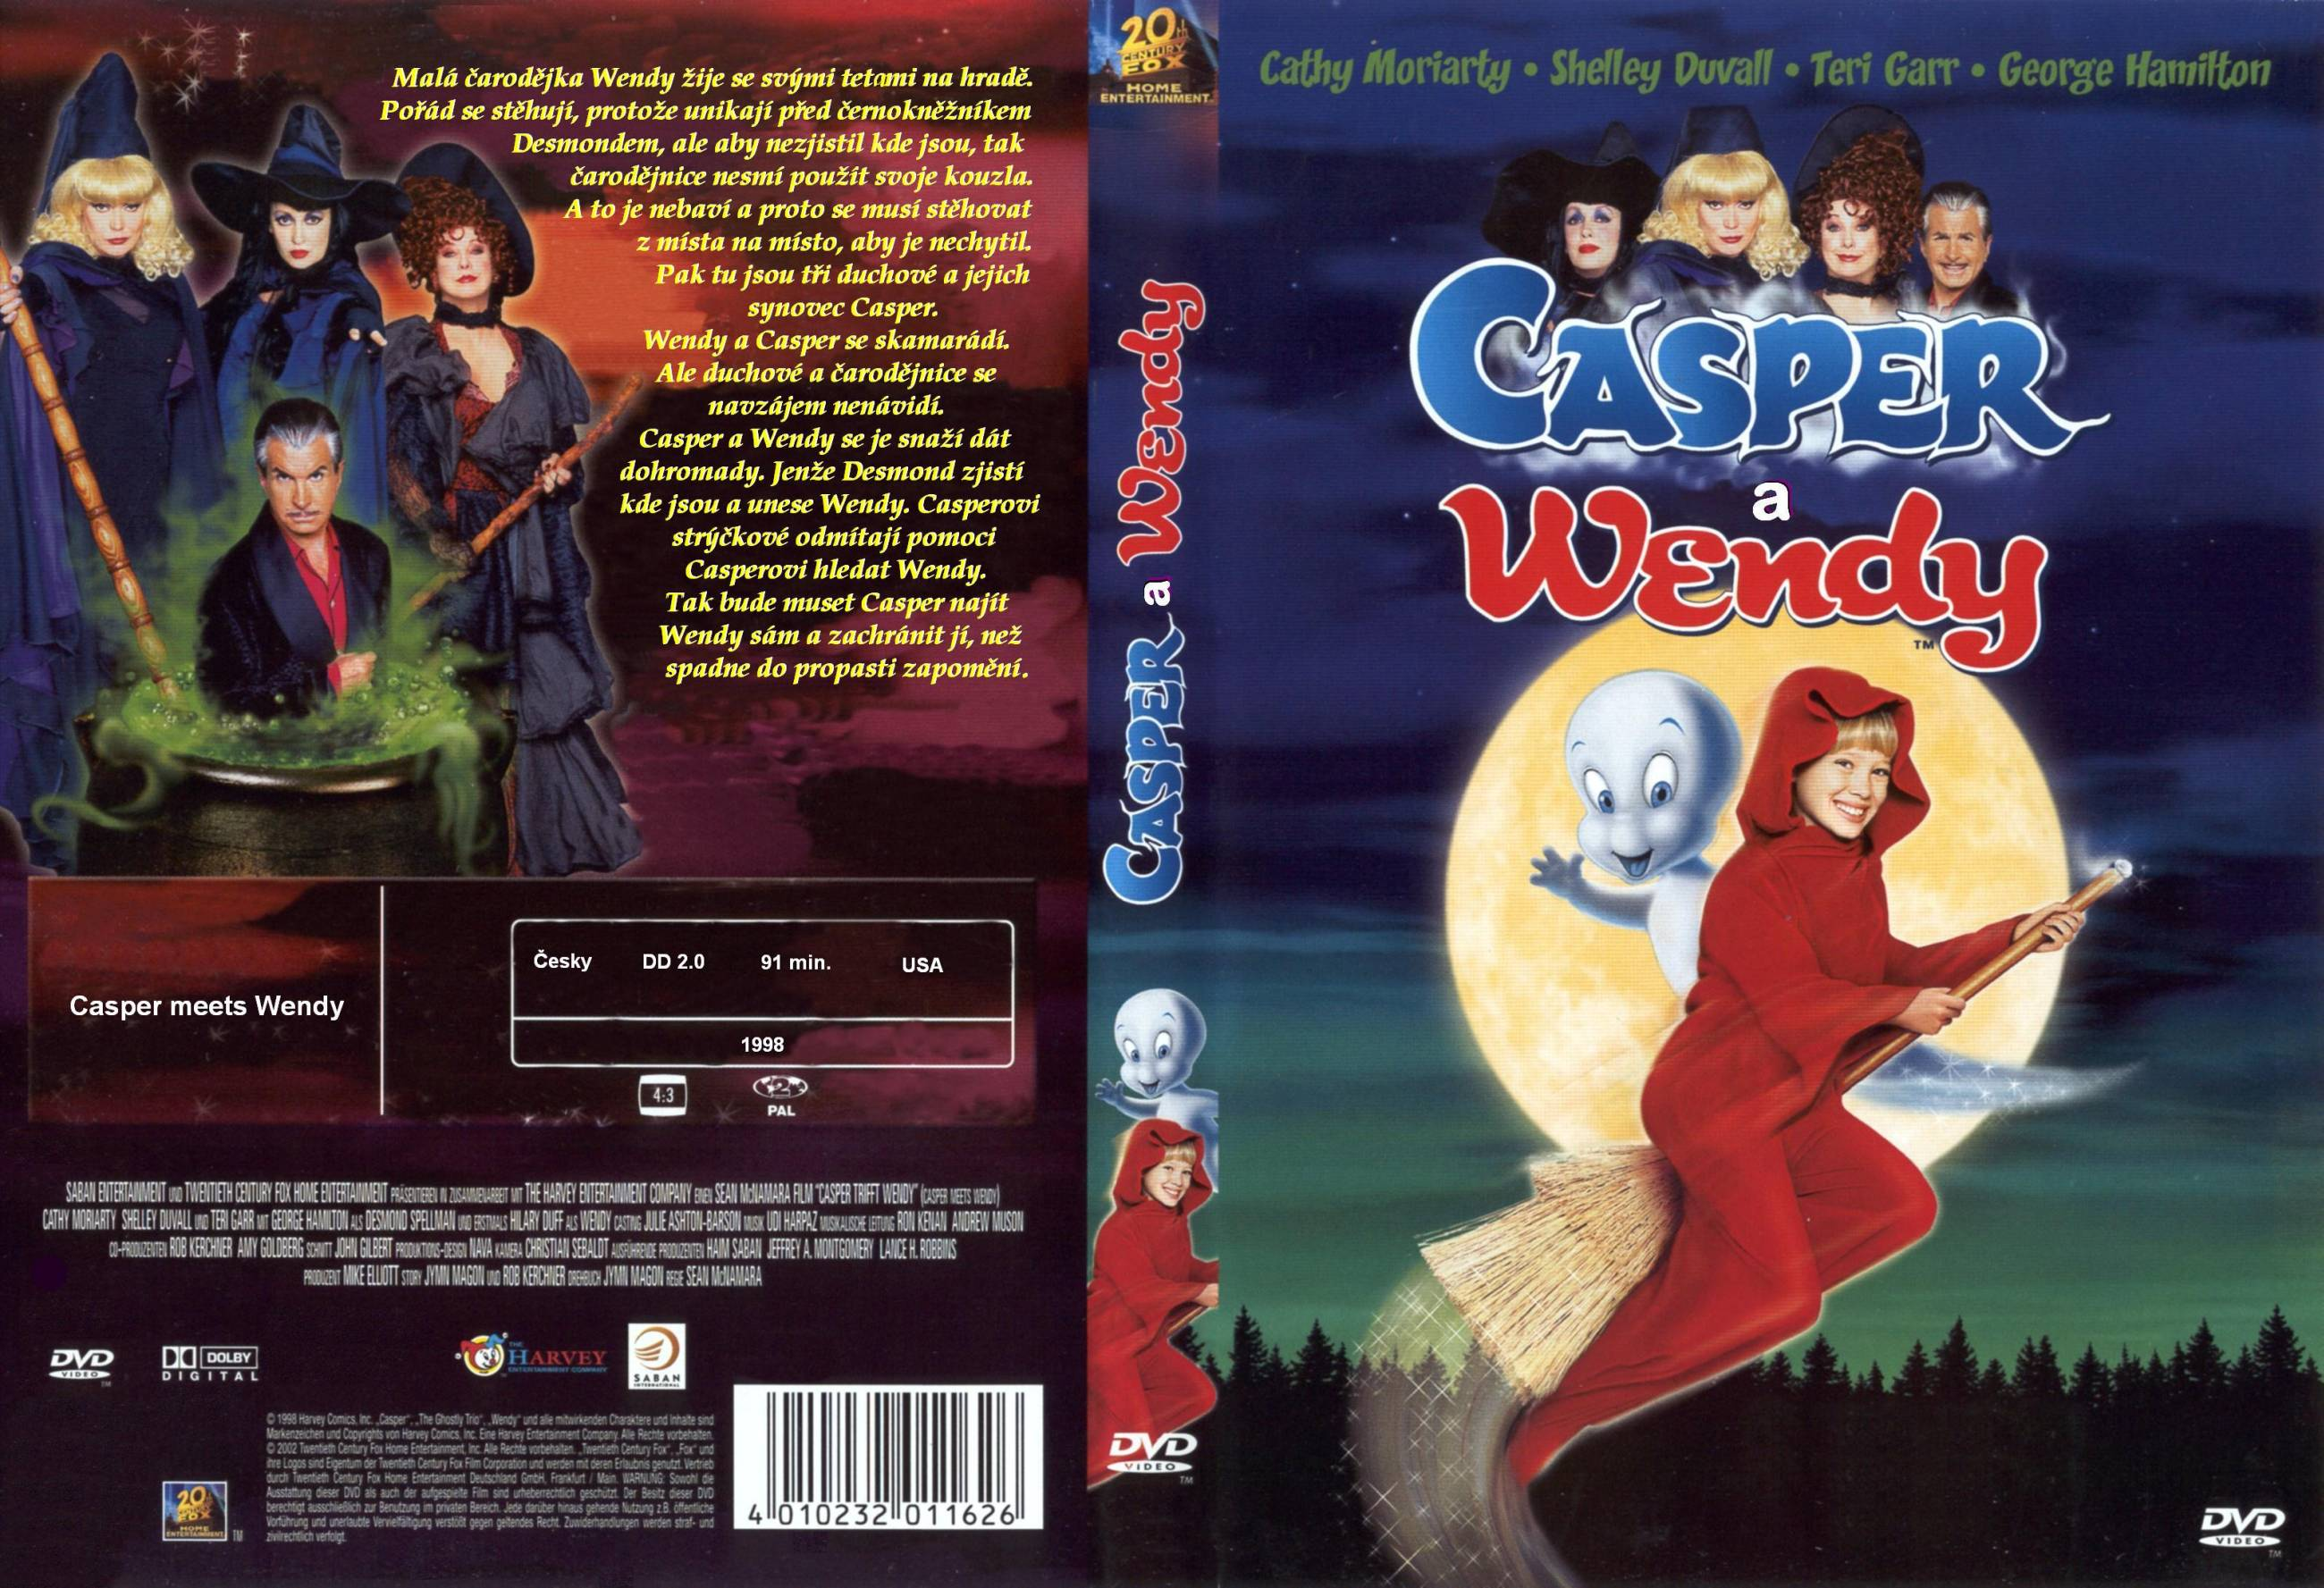 casper and wendy movie. casper meets wendy (1998) (tv) - front and movie